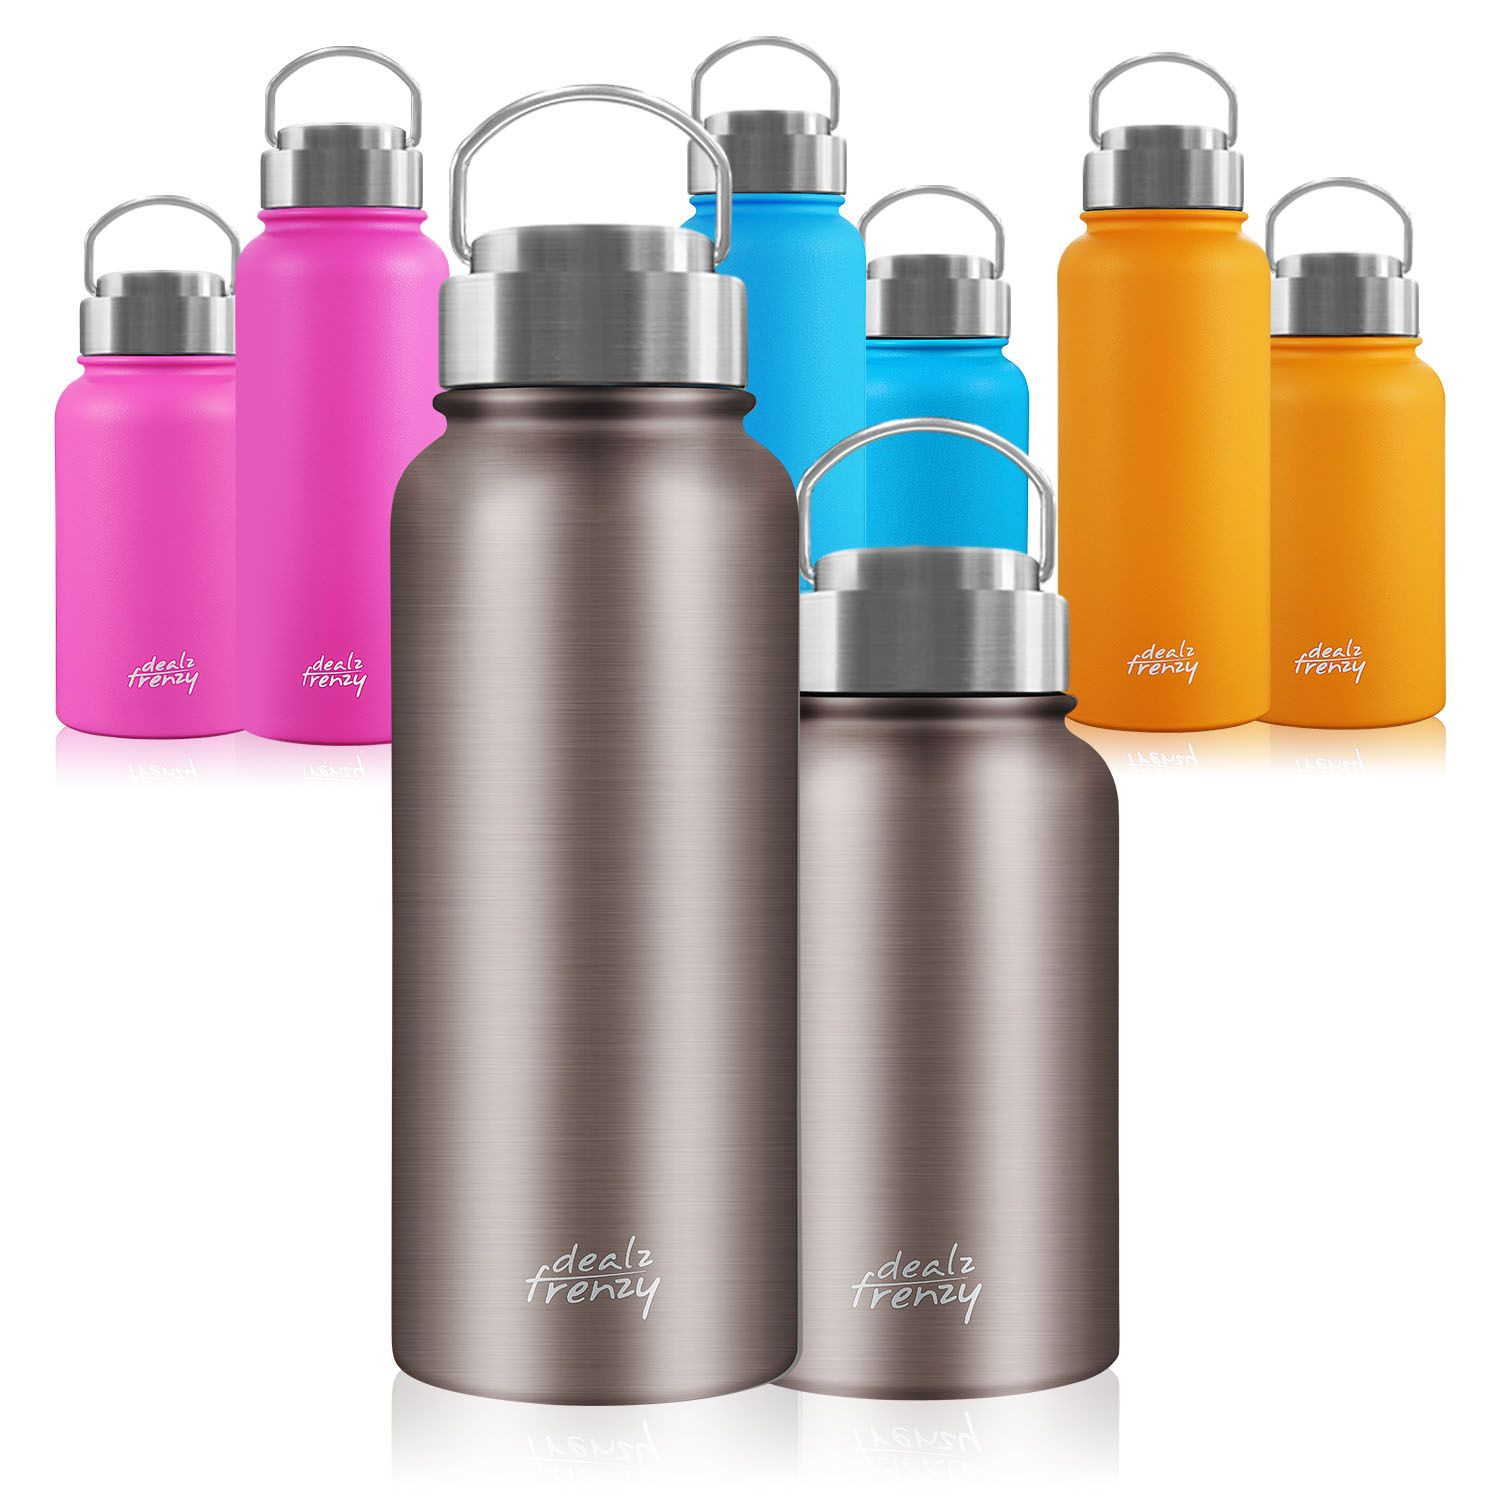 Double Wall Insulated Stainless Steel Travel Coffee Mug